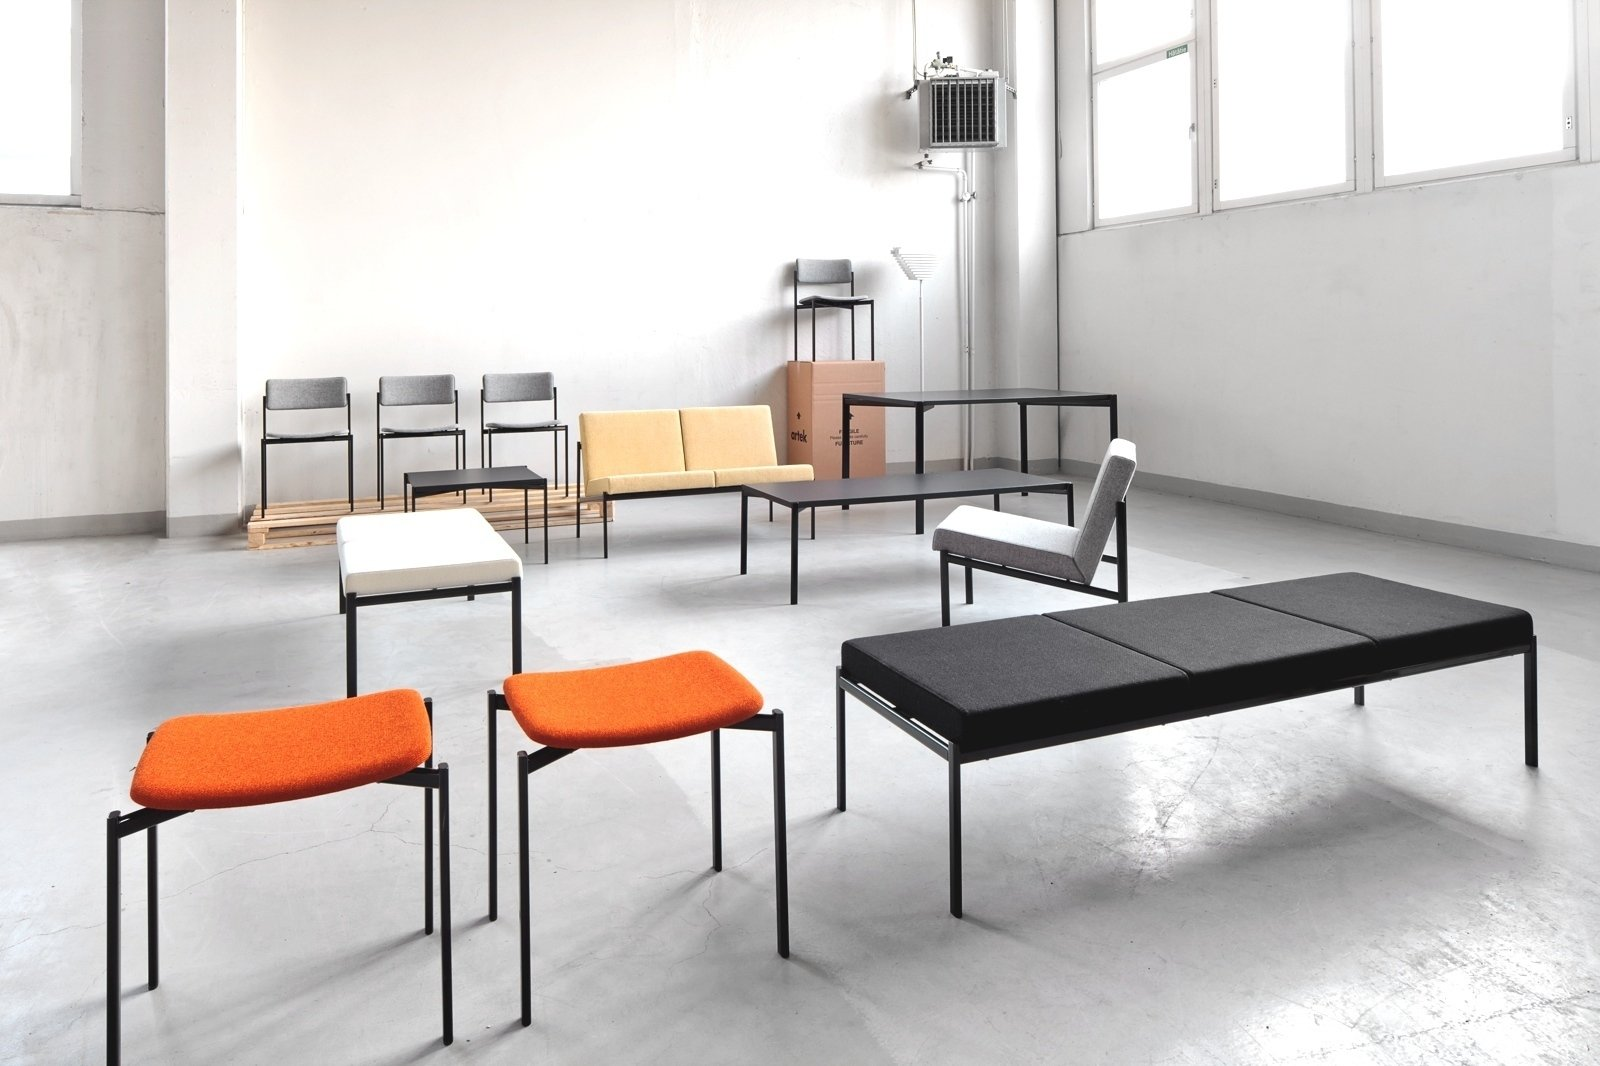 The Kiki series of chairs, tables, lounge chairs, benches, and sofas was designed by Tapiovaara in 1960. The oval steel tubing framework for the furniture is a departure from the bent plywood seen in the designer's earlier work. Artek reissued the line in 2013.  100+ Best Modern Seating Designs by Dwell from Aalto Isn't the Only Finnish Modernist: Meet Ilmari Tapiovaara